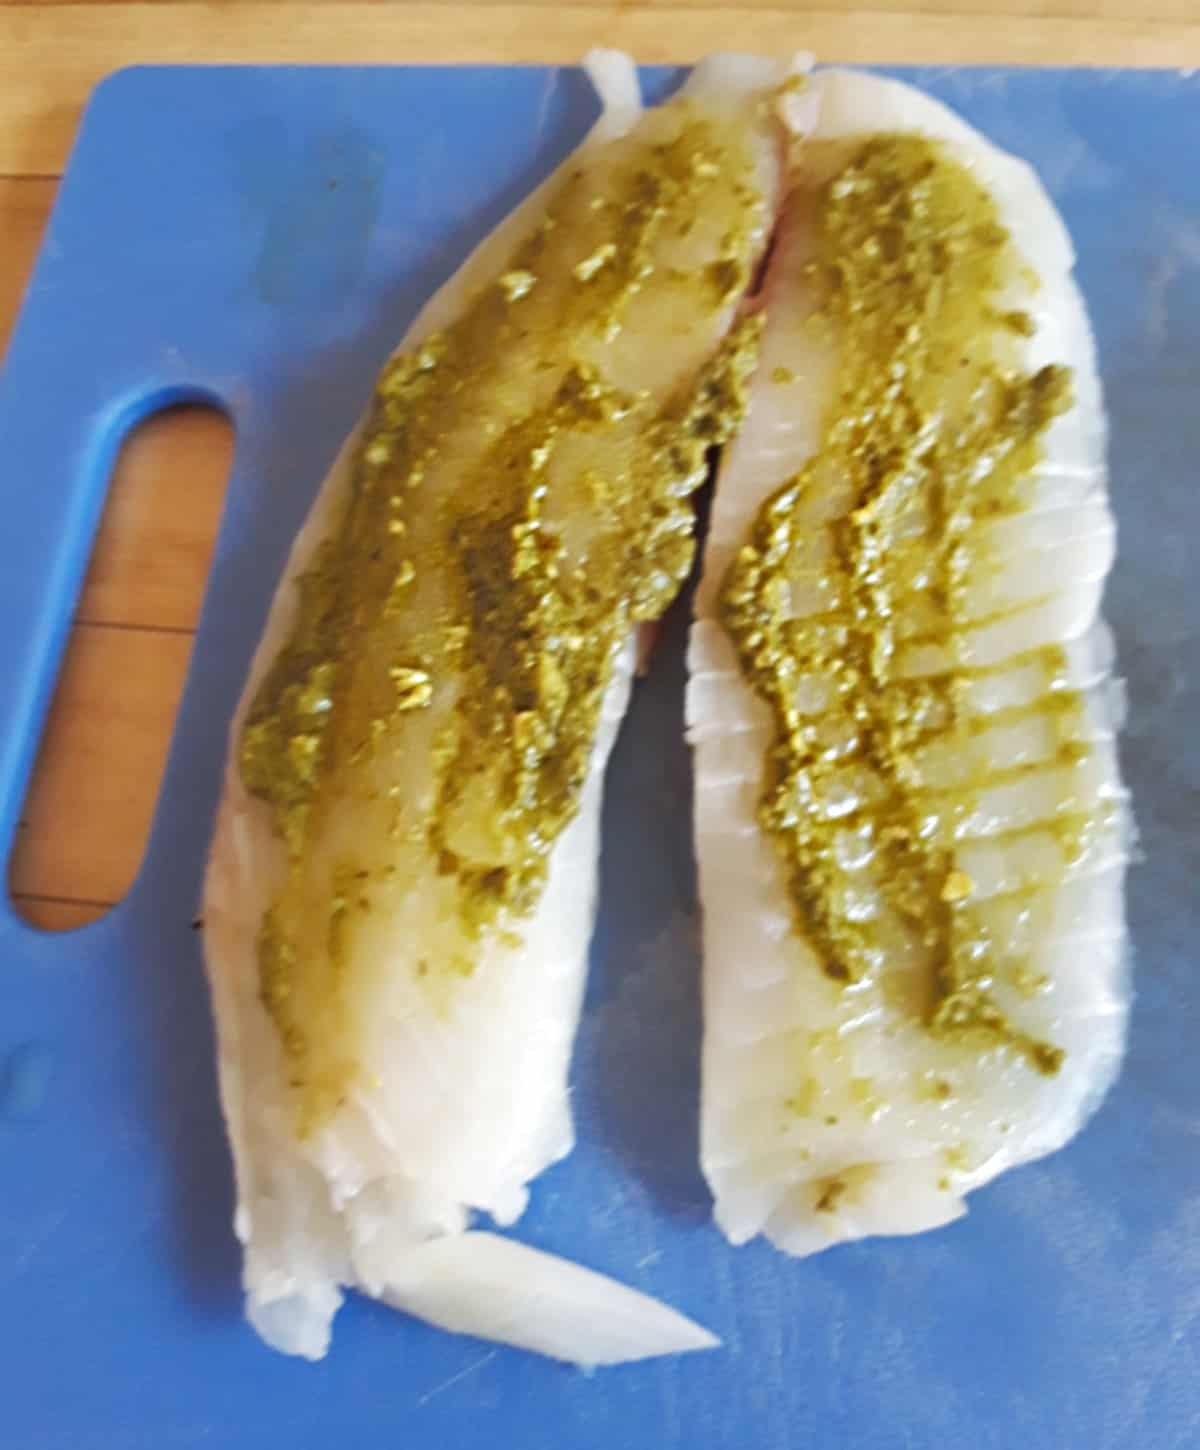 Uncooked tilapia fillets topped with basil pesto on blue cutting board.